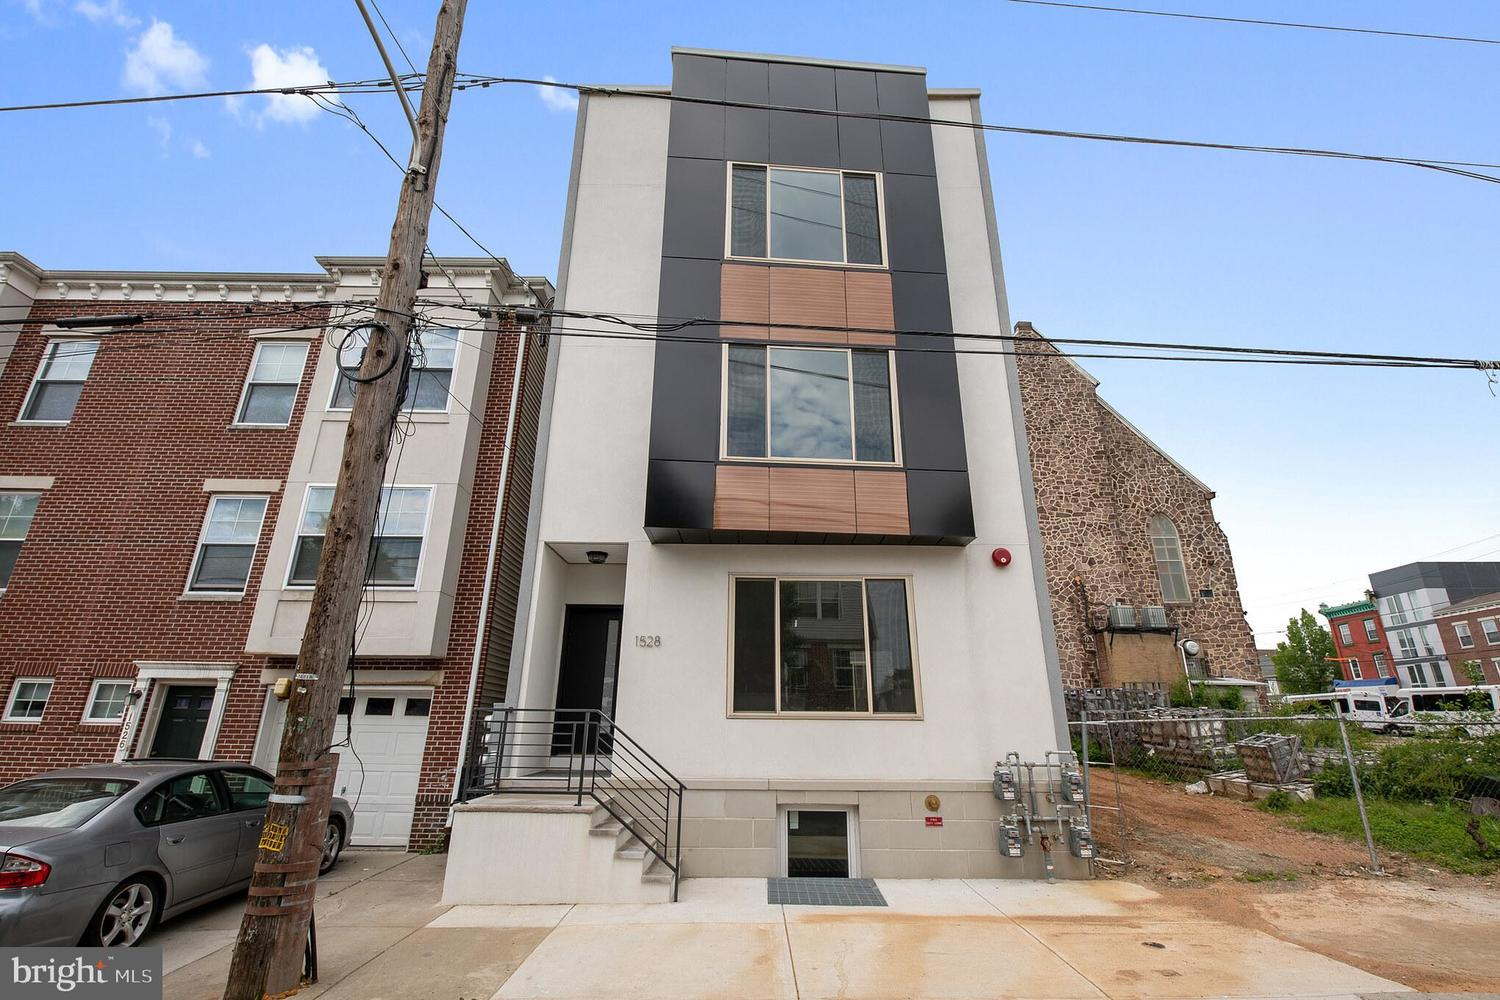 1528 North Marshall Street, Unit 3 Philadelphia, PA 19122